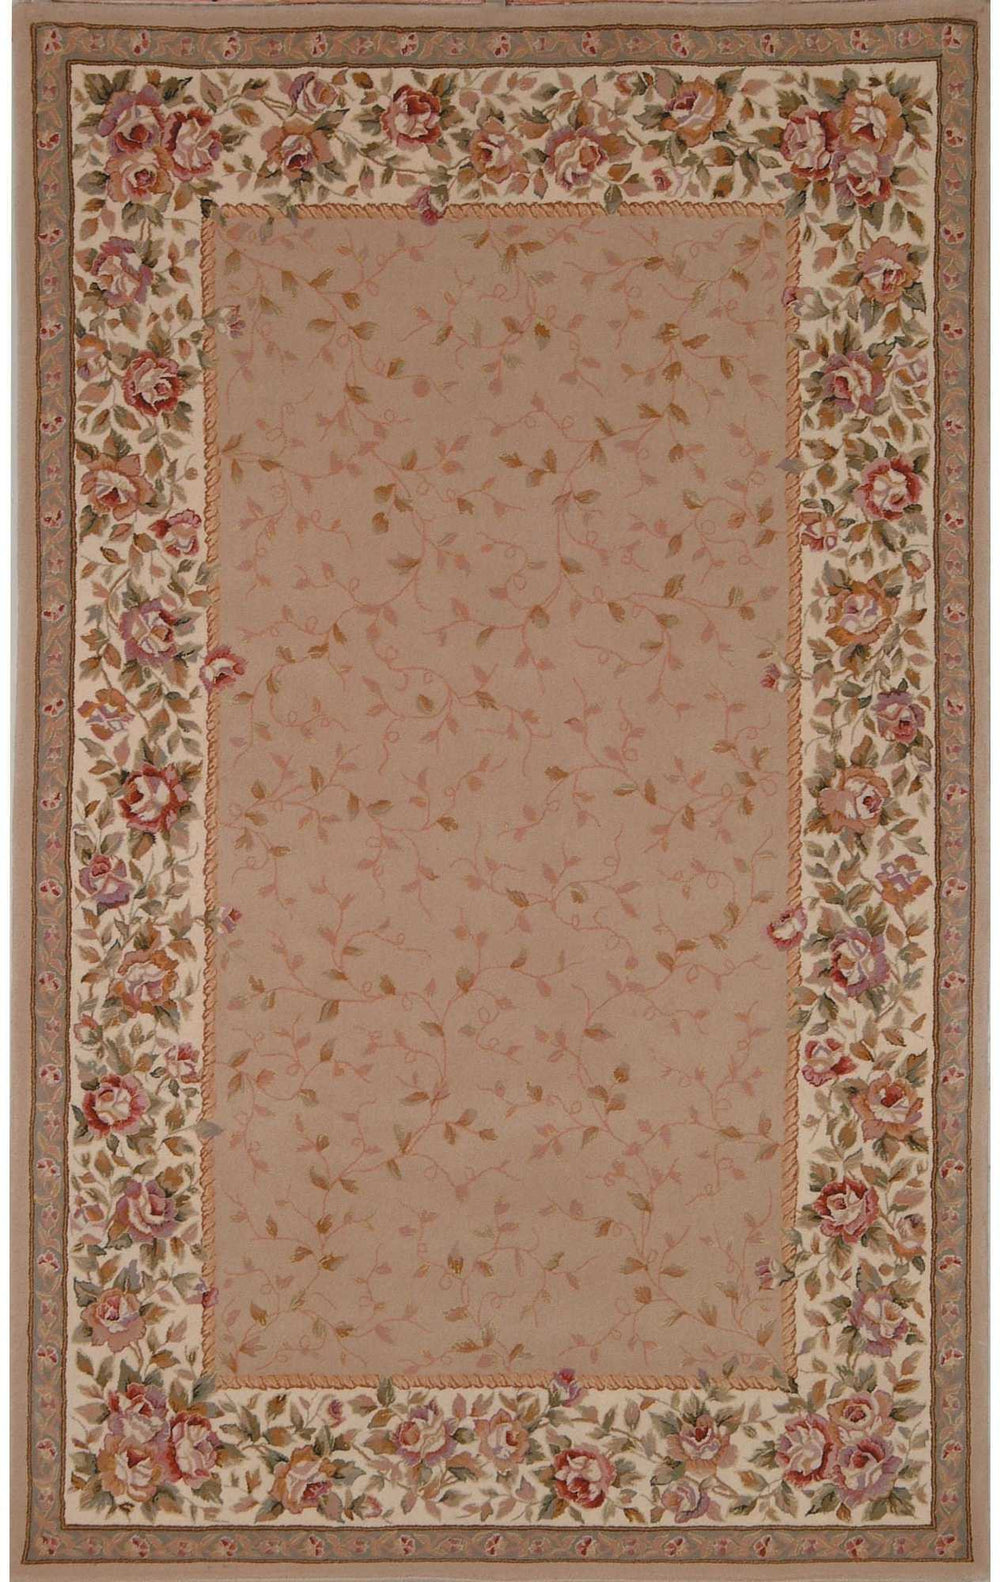 Safavieh French Tapis FT218 Area Rug